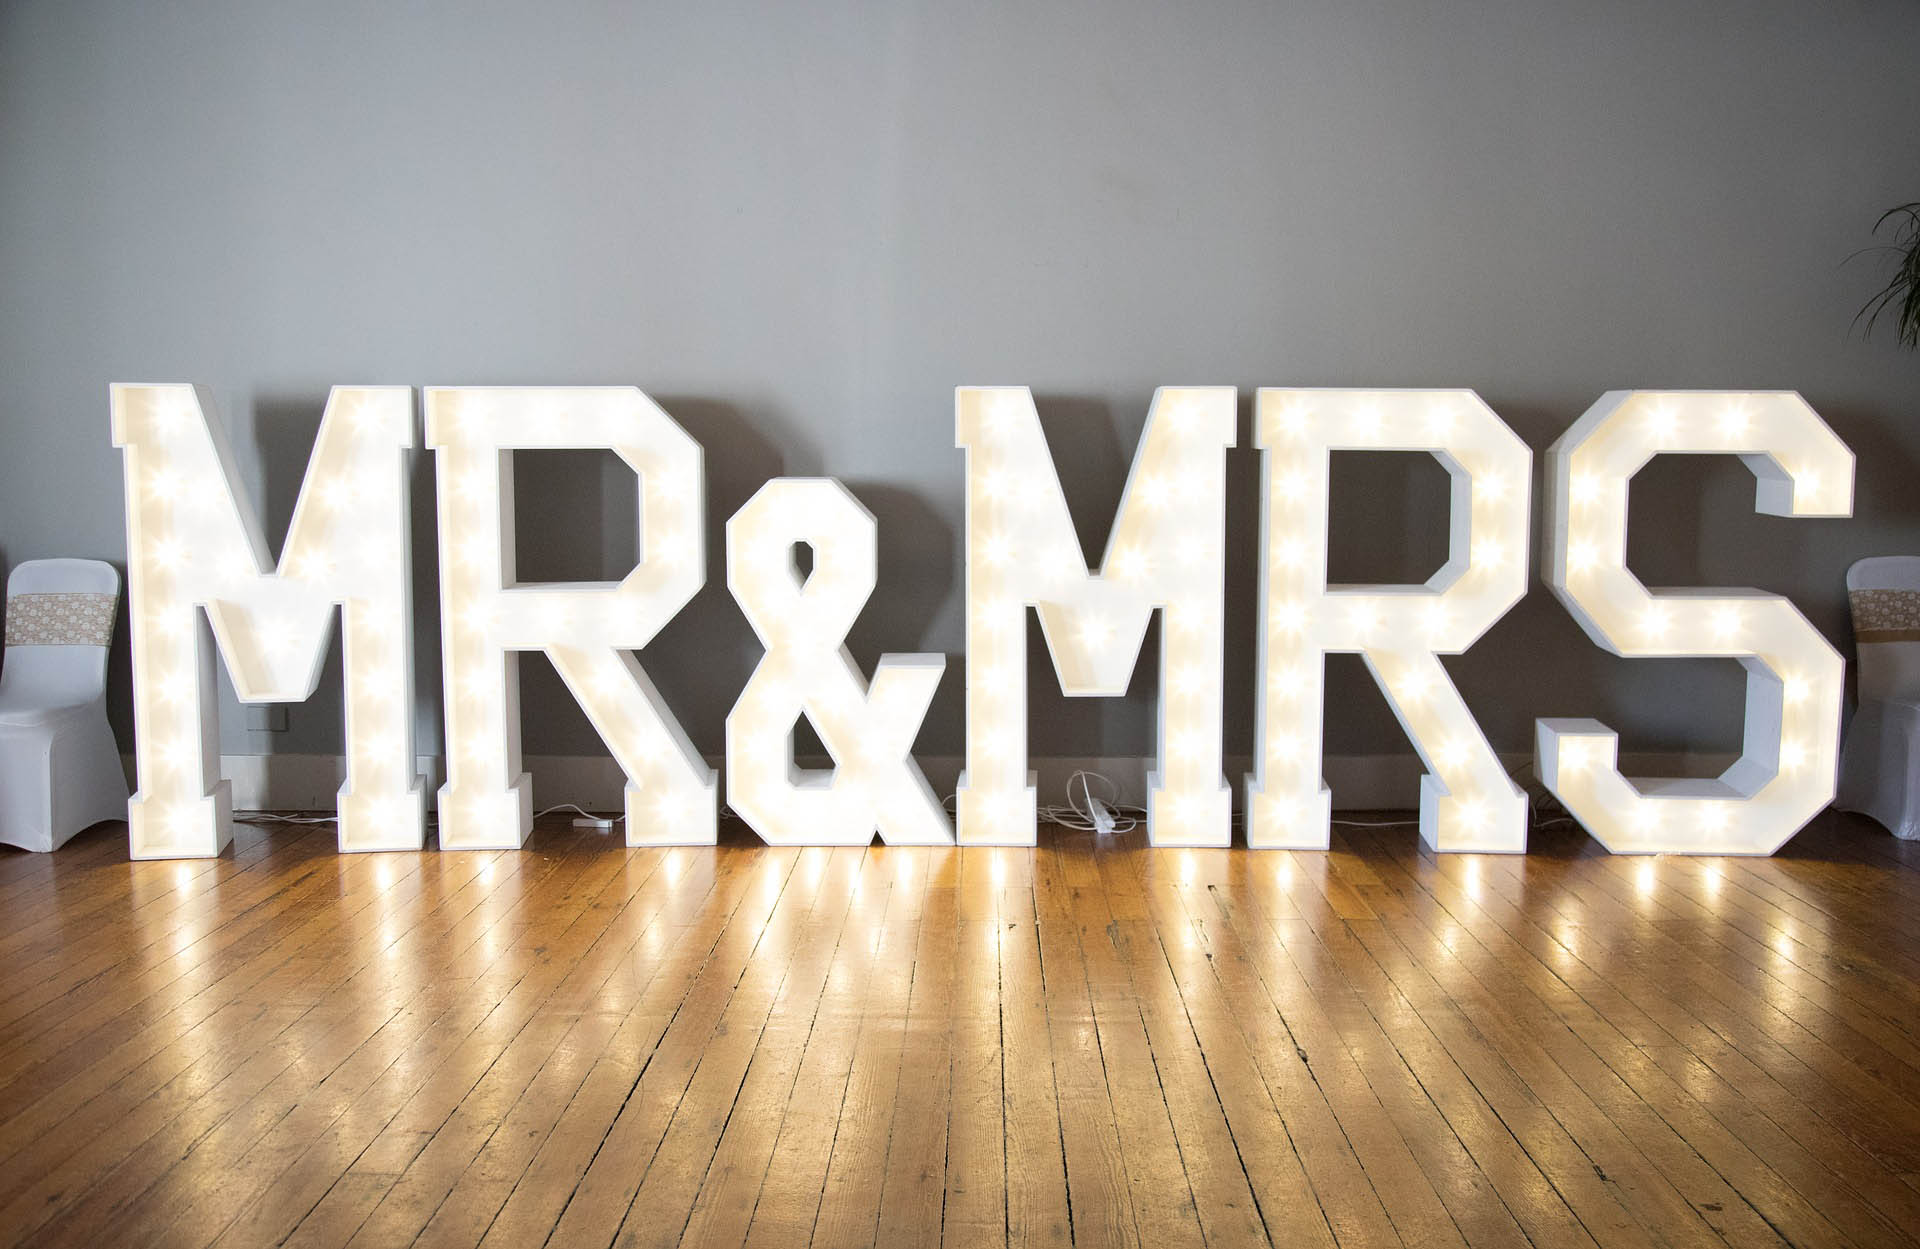 Mr and mrs decoration letters barin multivenues reception halls for events - 7